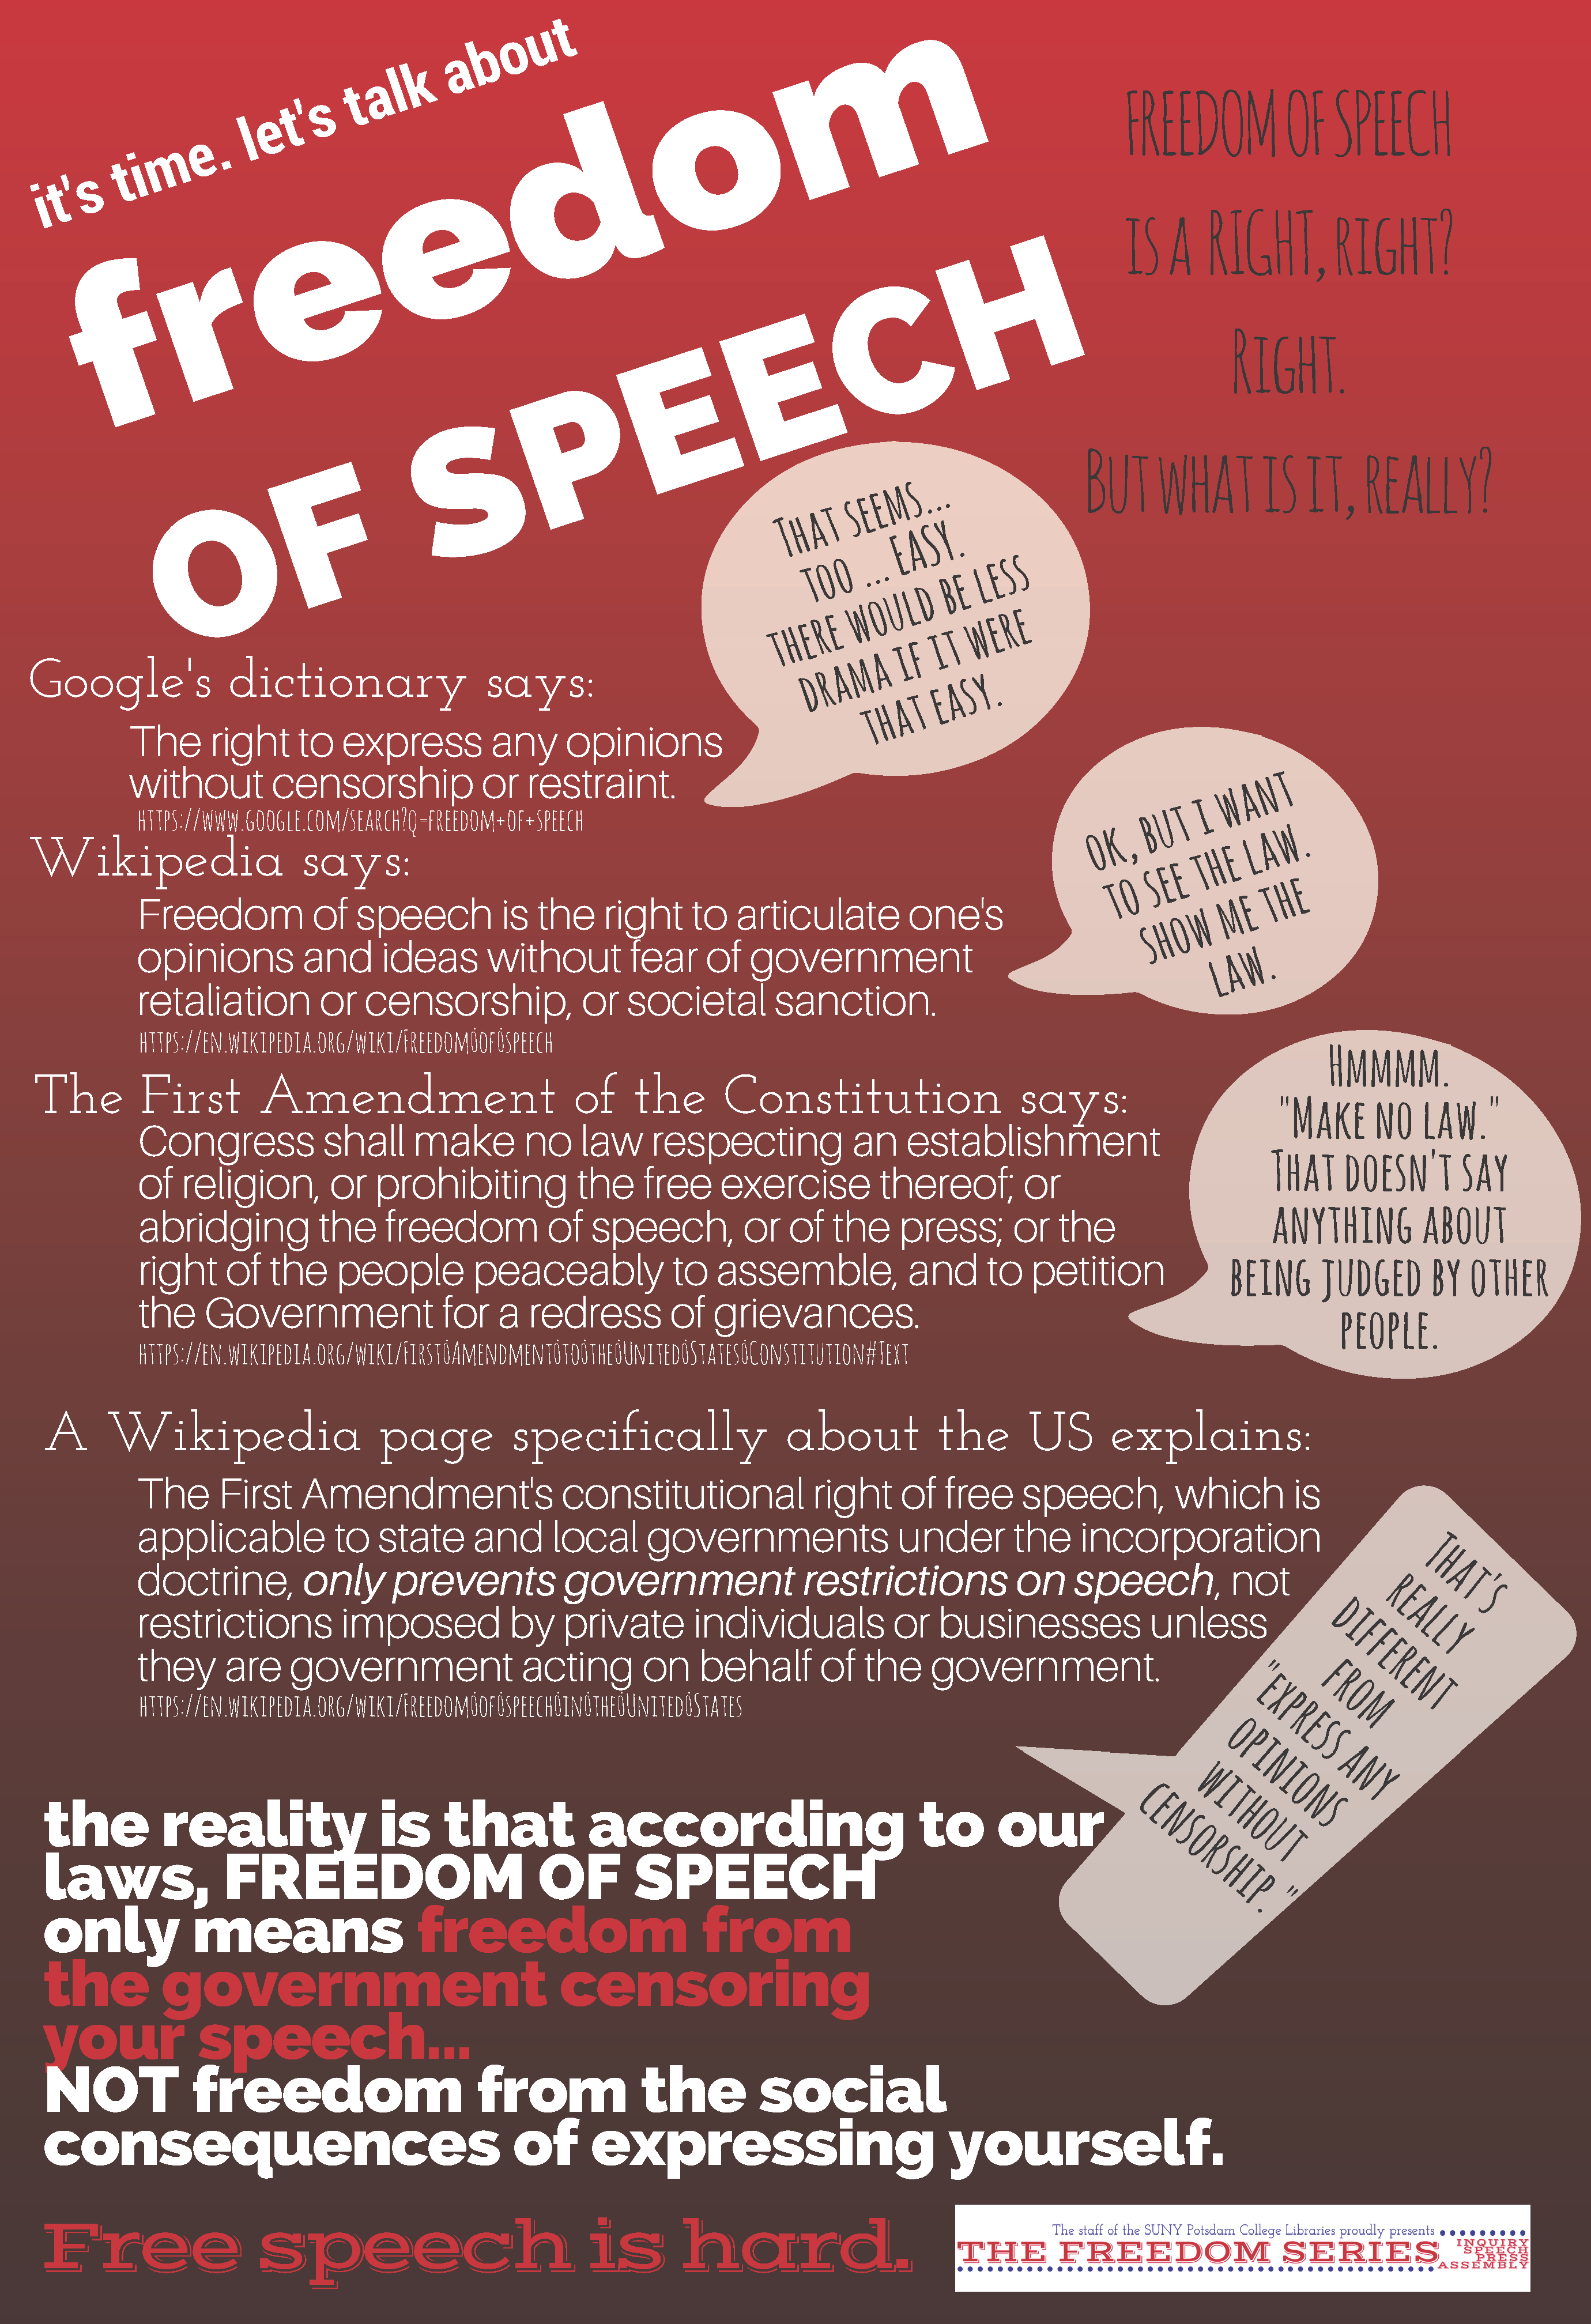 Freedom of Speech: What it is and what it isn't - April 3 - The Freedom Series - College